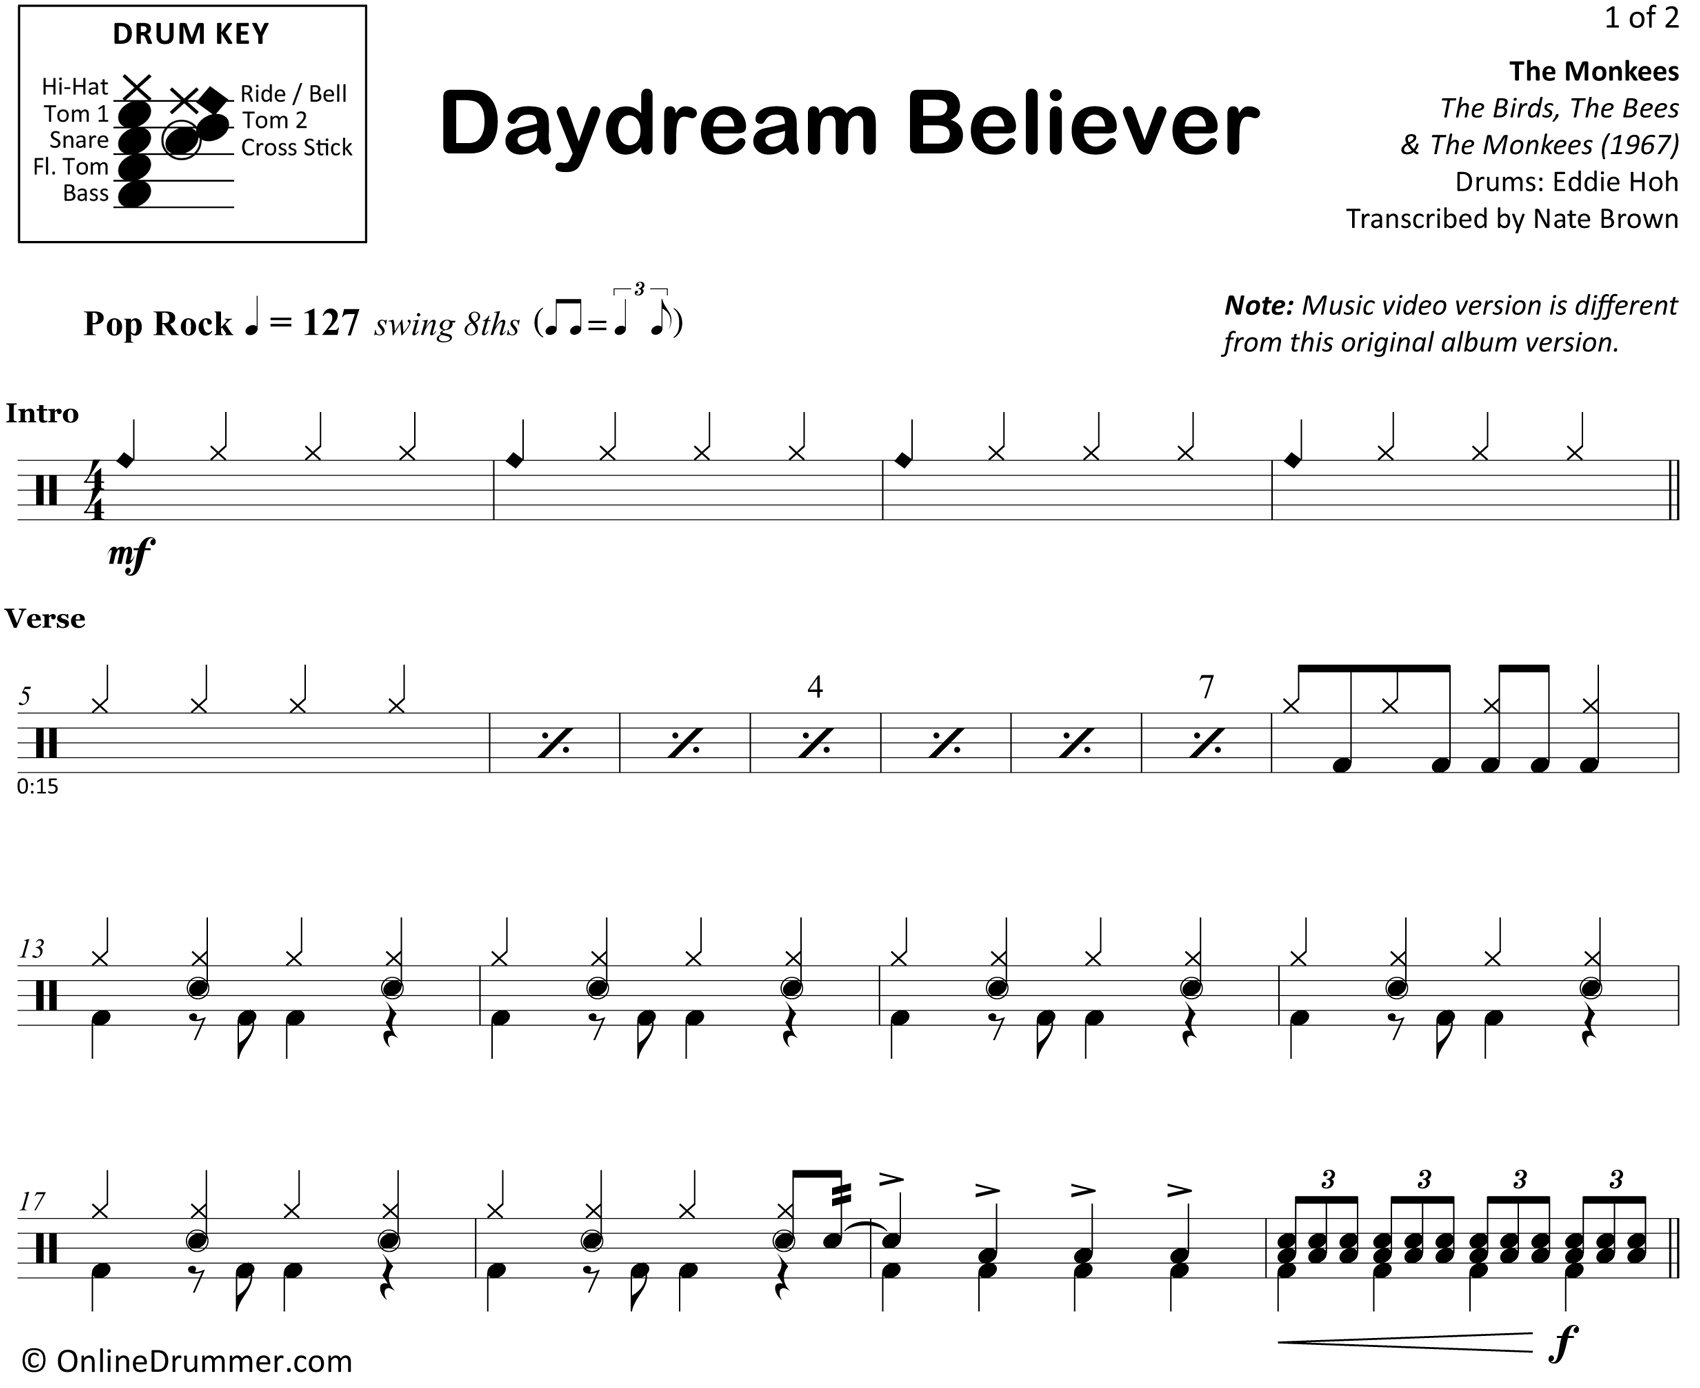 Daydream Believer - The Monkees - Drum Sheet Music